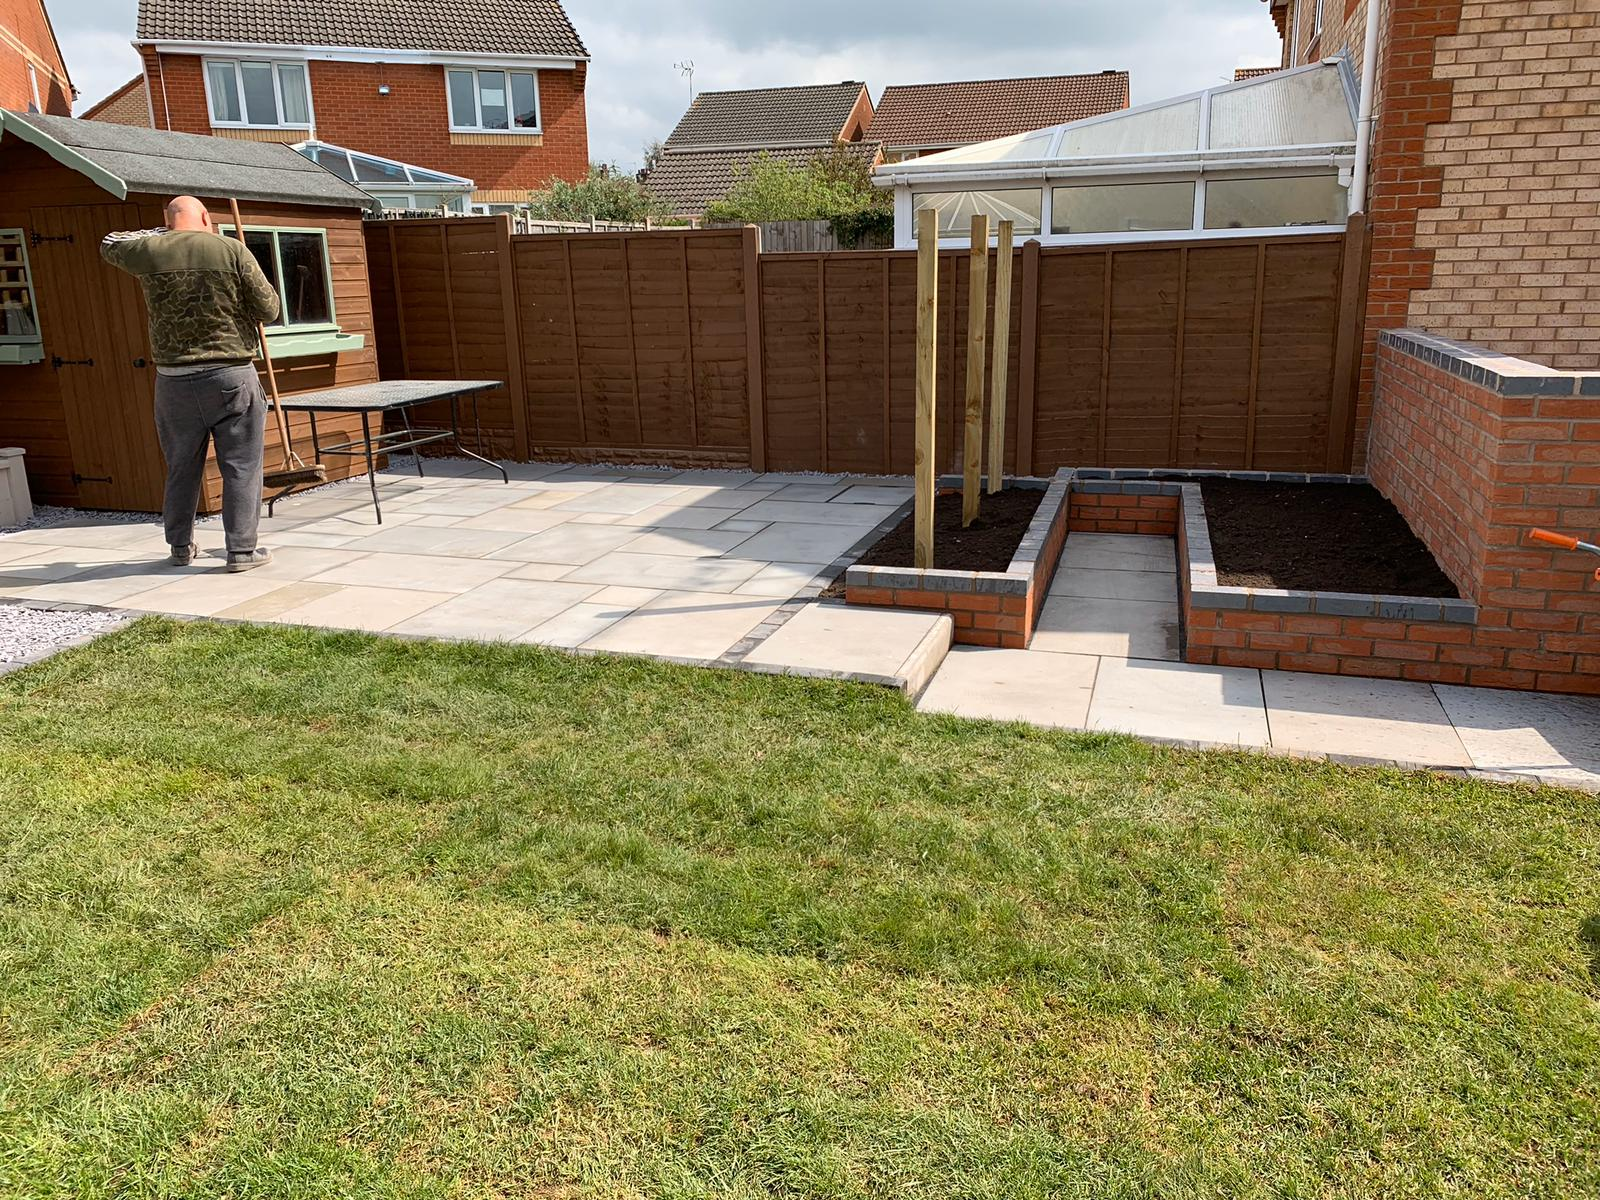 Newly laid patio area including screen, walls and turf